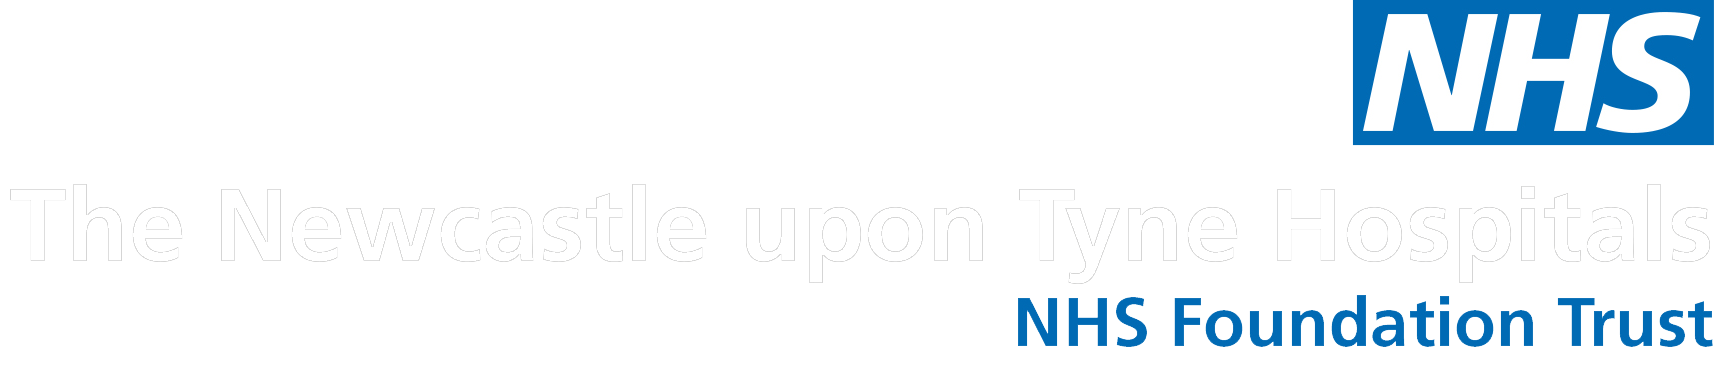 NUTH-logo.png